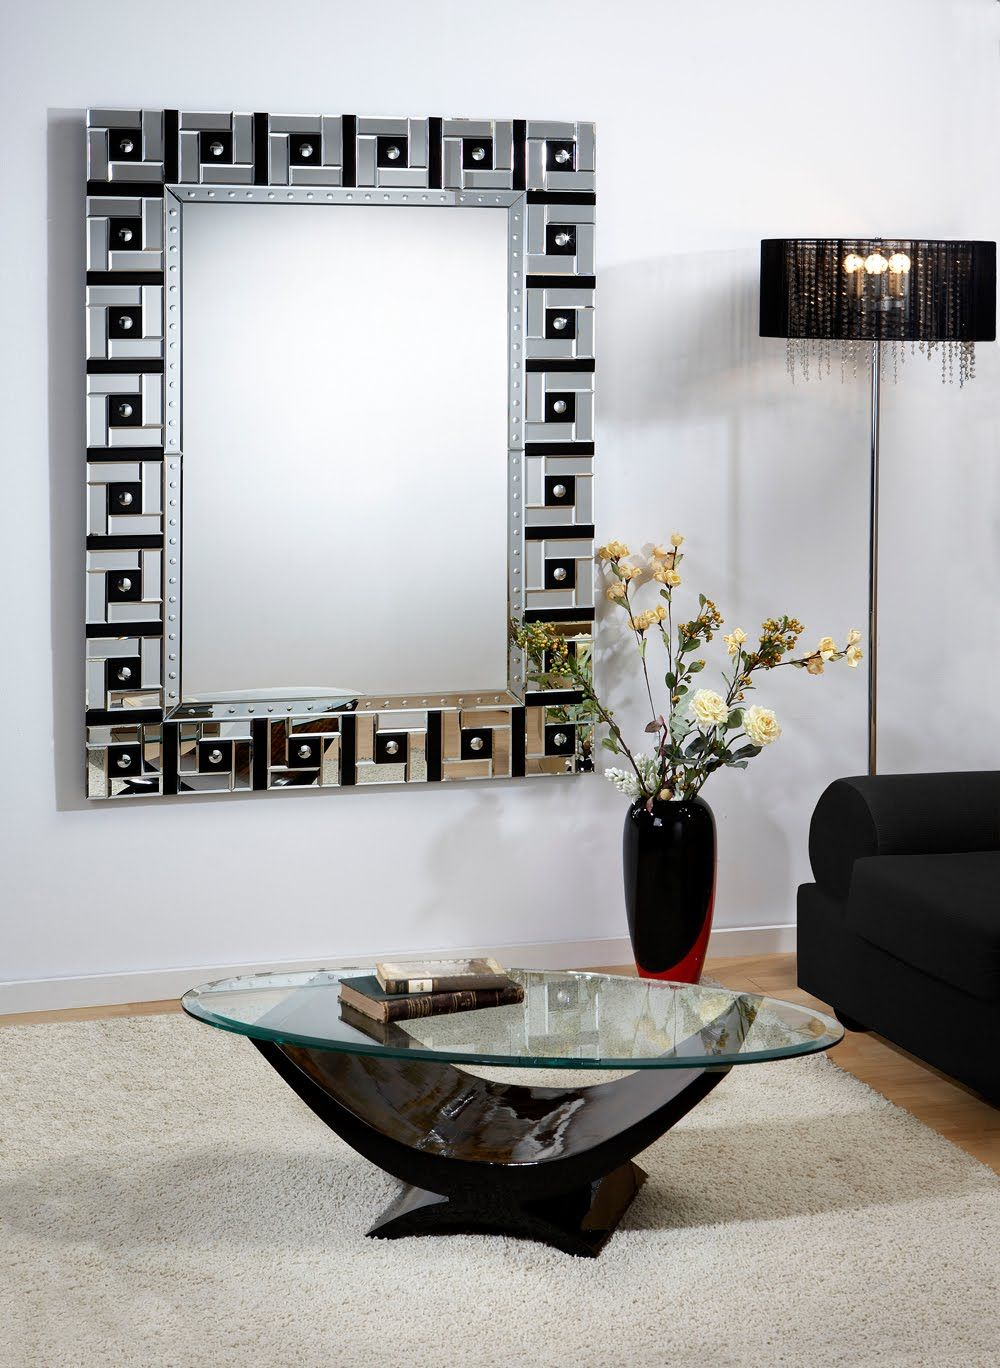 magnifique miroir d coratif design miroir d 39 entr e. Black Bedroom Furniture Sets. Home Design Ideas